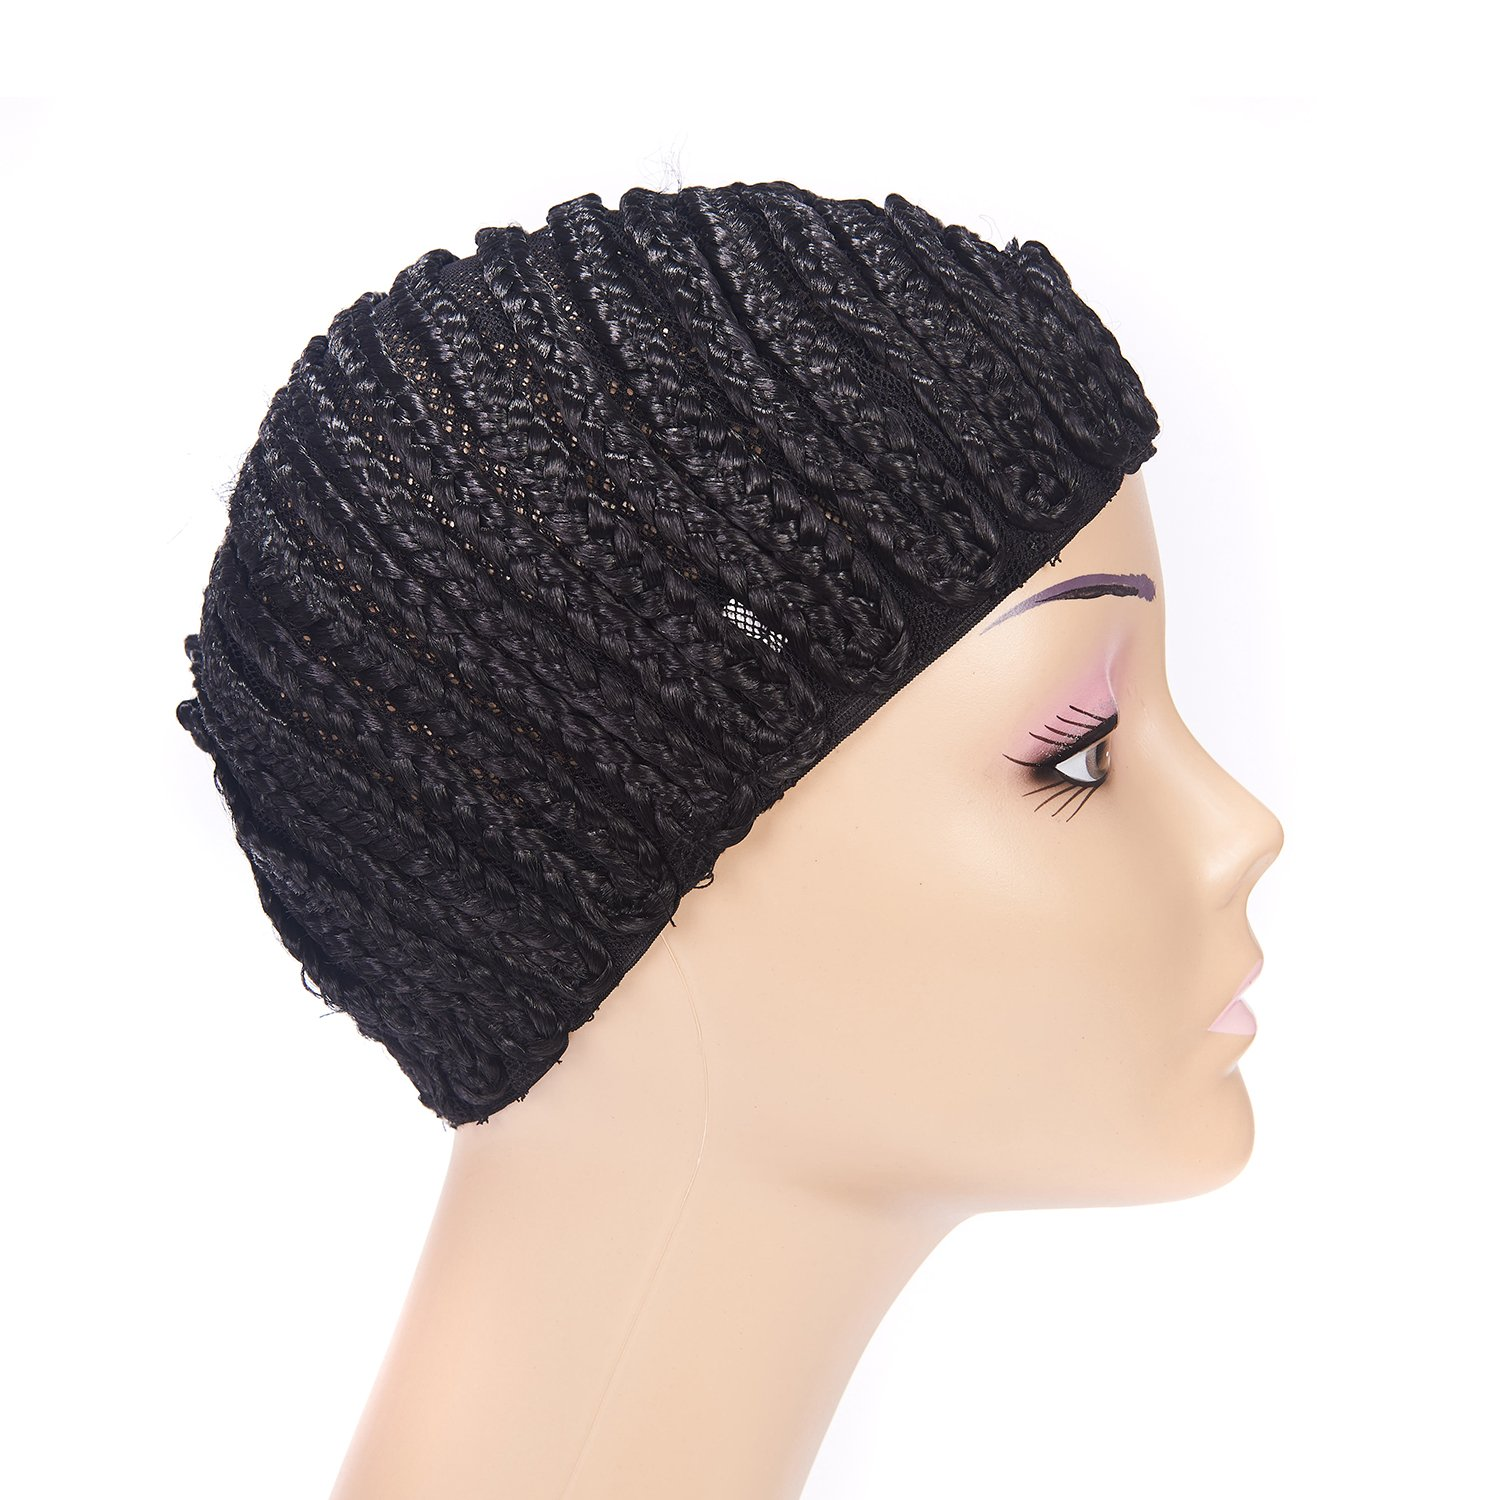 Clip in Braided Wig Caps Crochet Cornrow Cap For Easier Sew In Cap for Making Wigs Adjustable Crochet Wig Cap with 1 Free Hook Needle (L) by XFX Hair (Image #2)